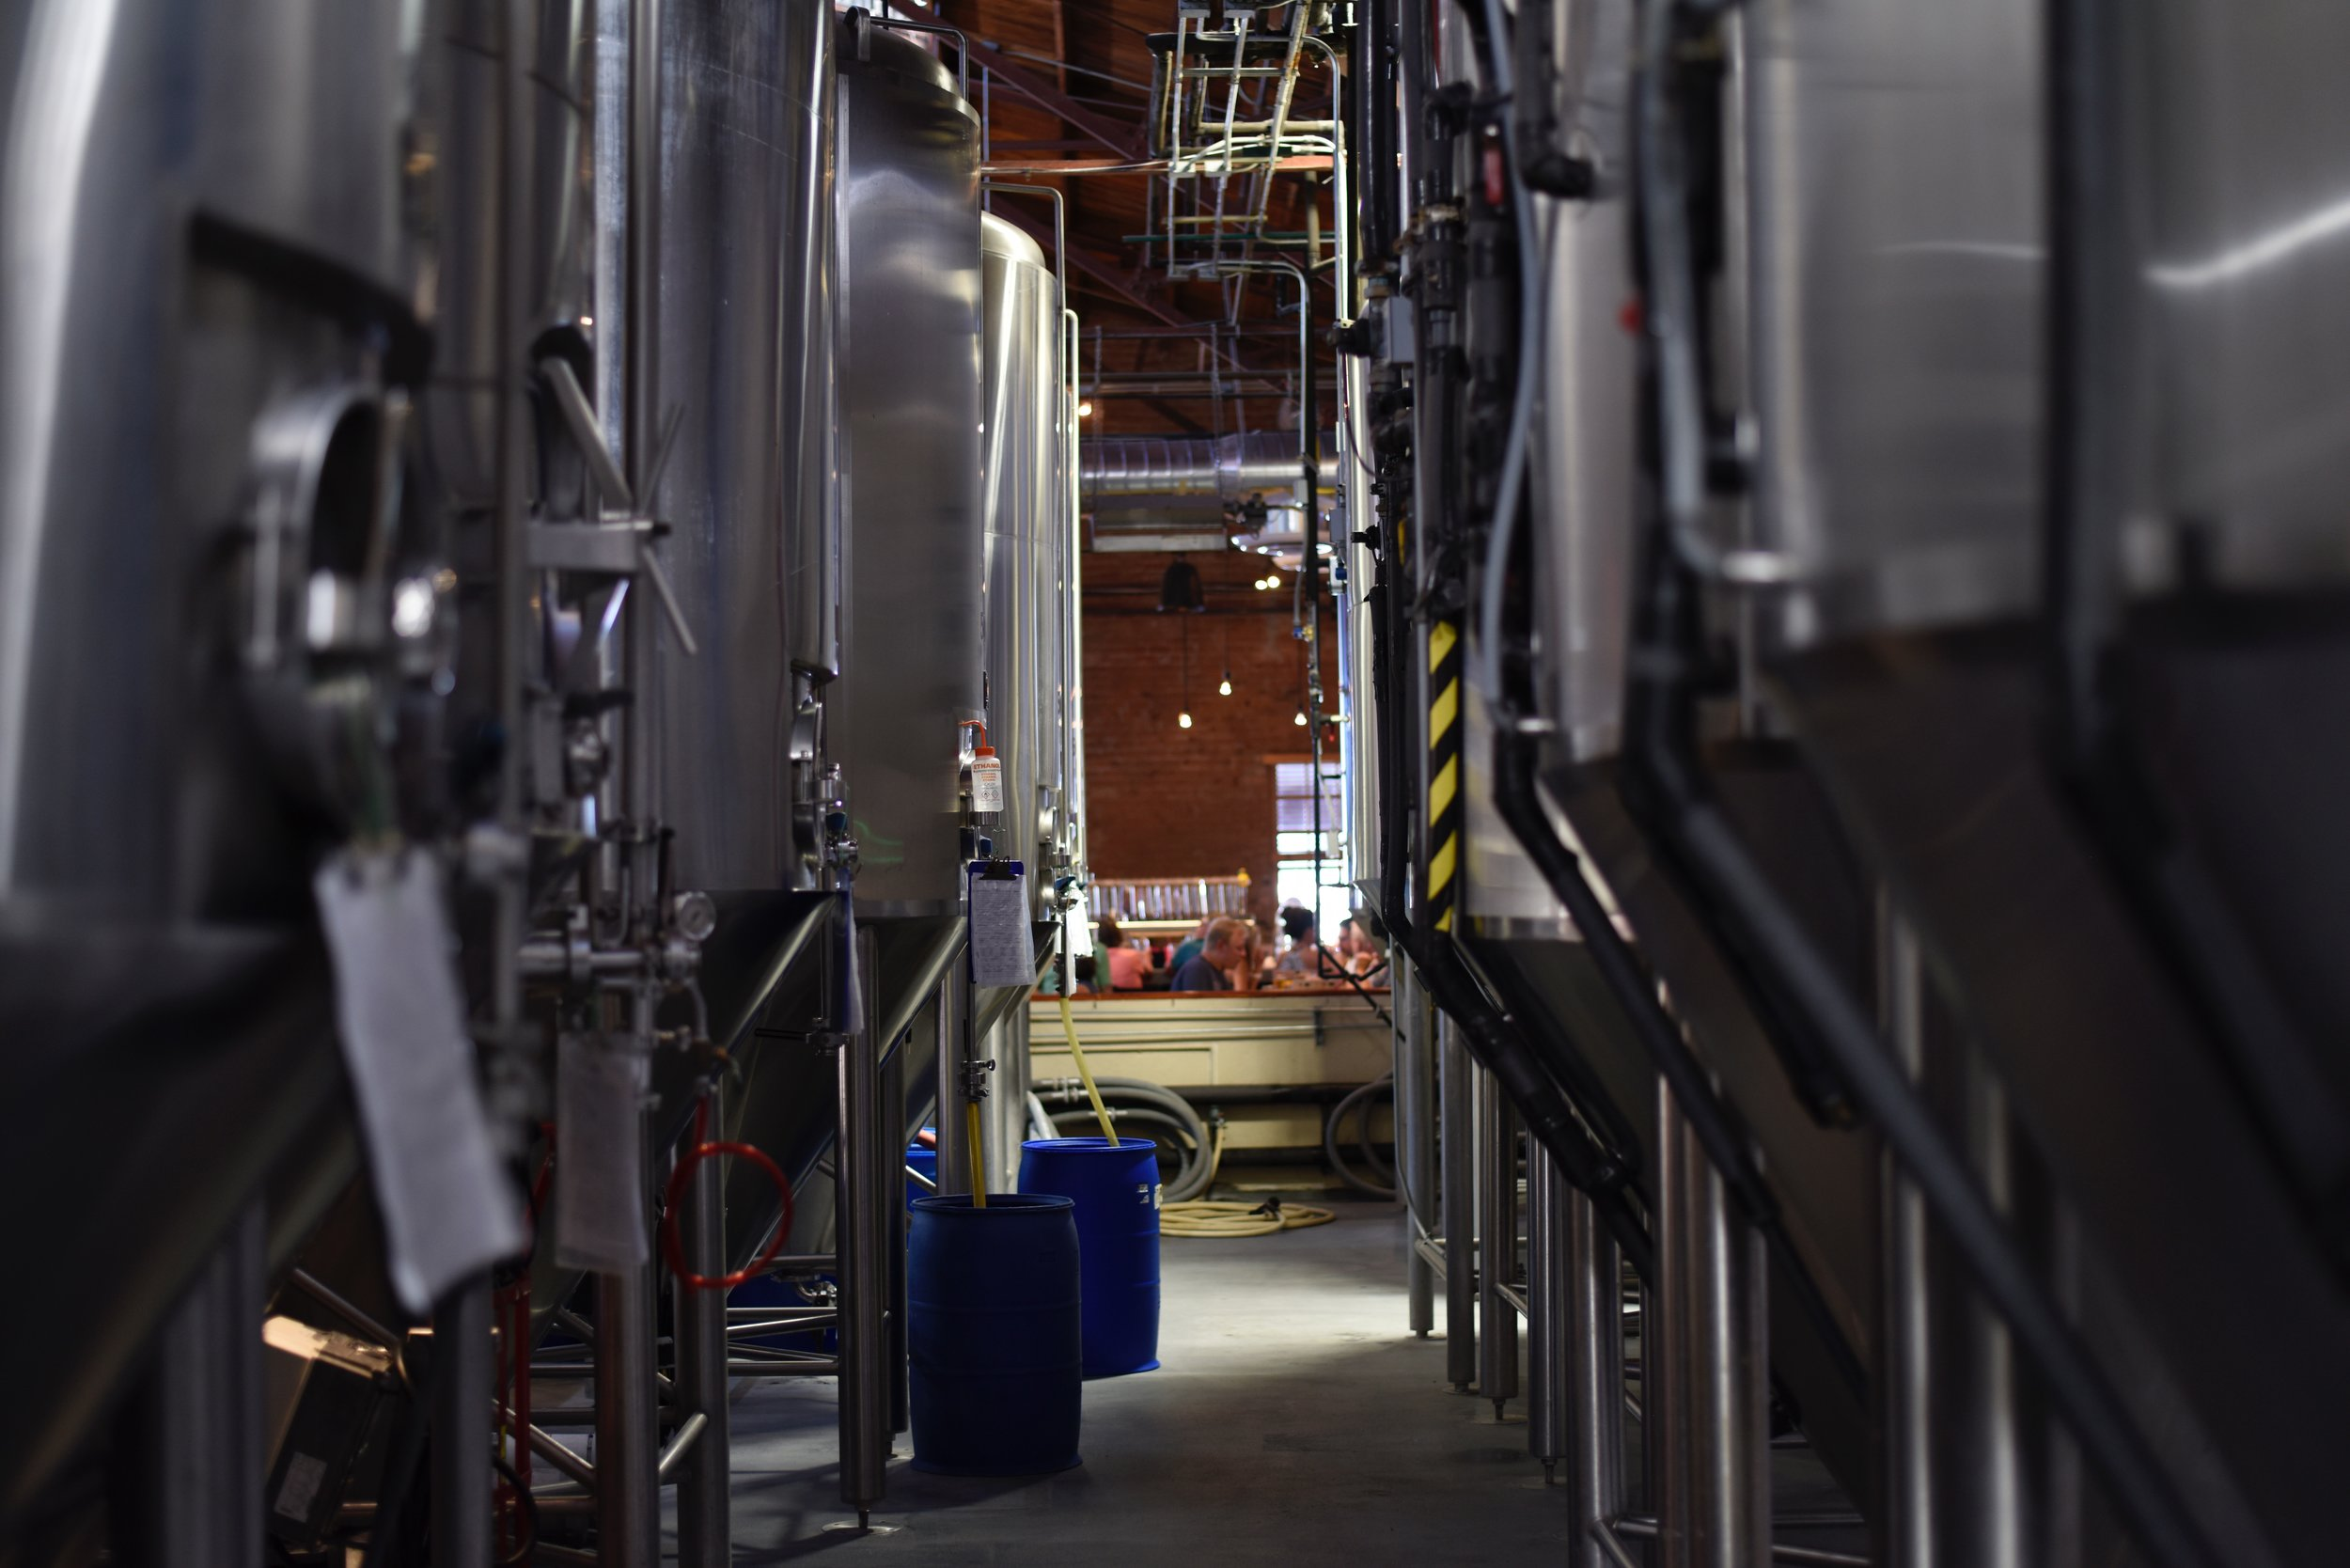 Tanks in brewery